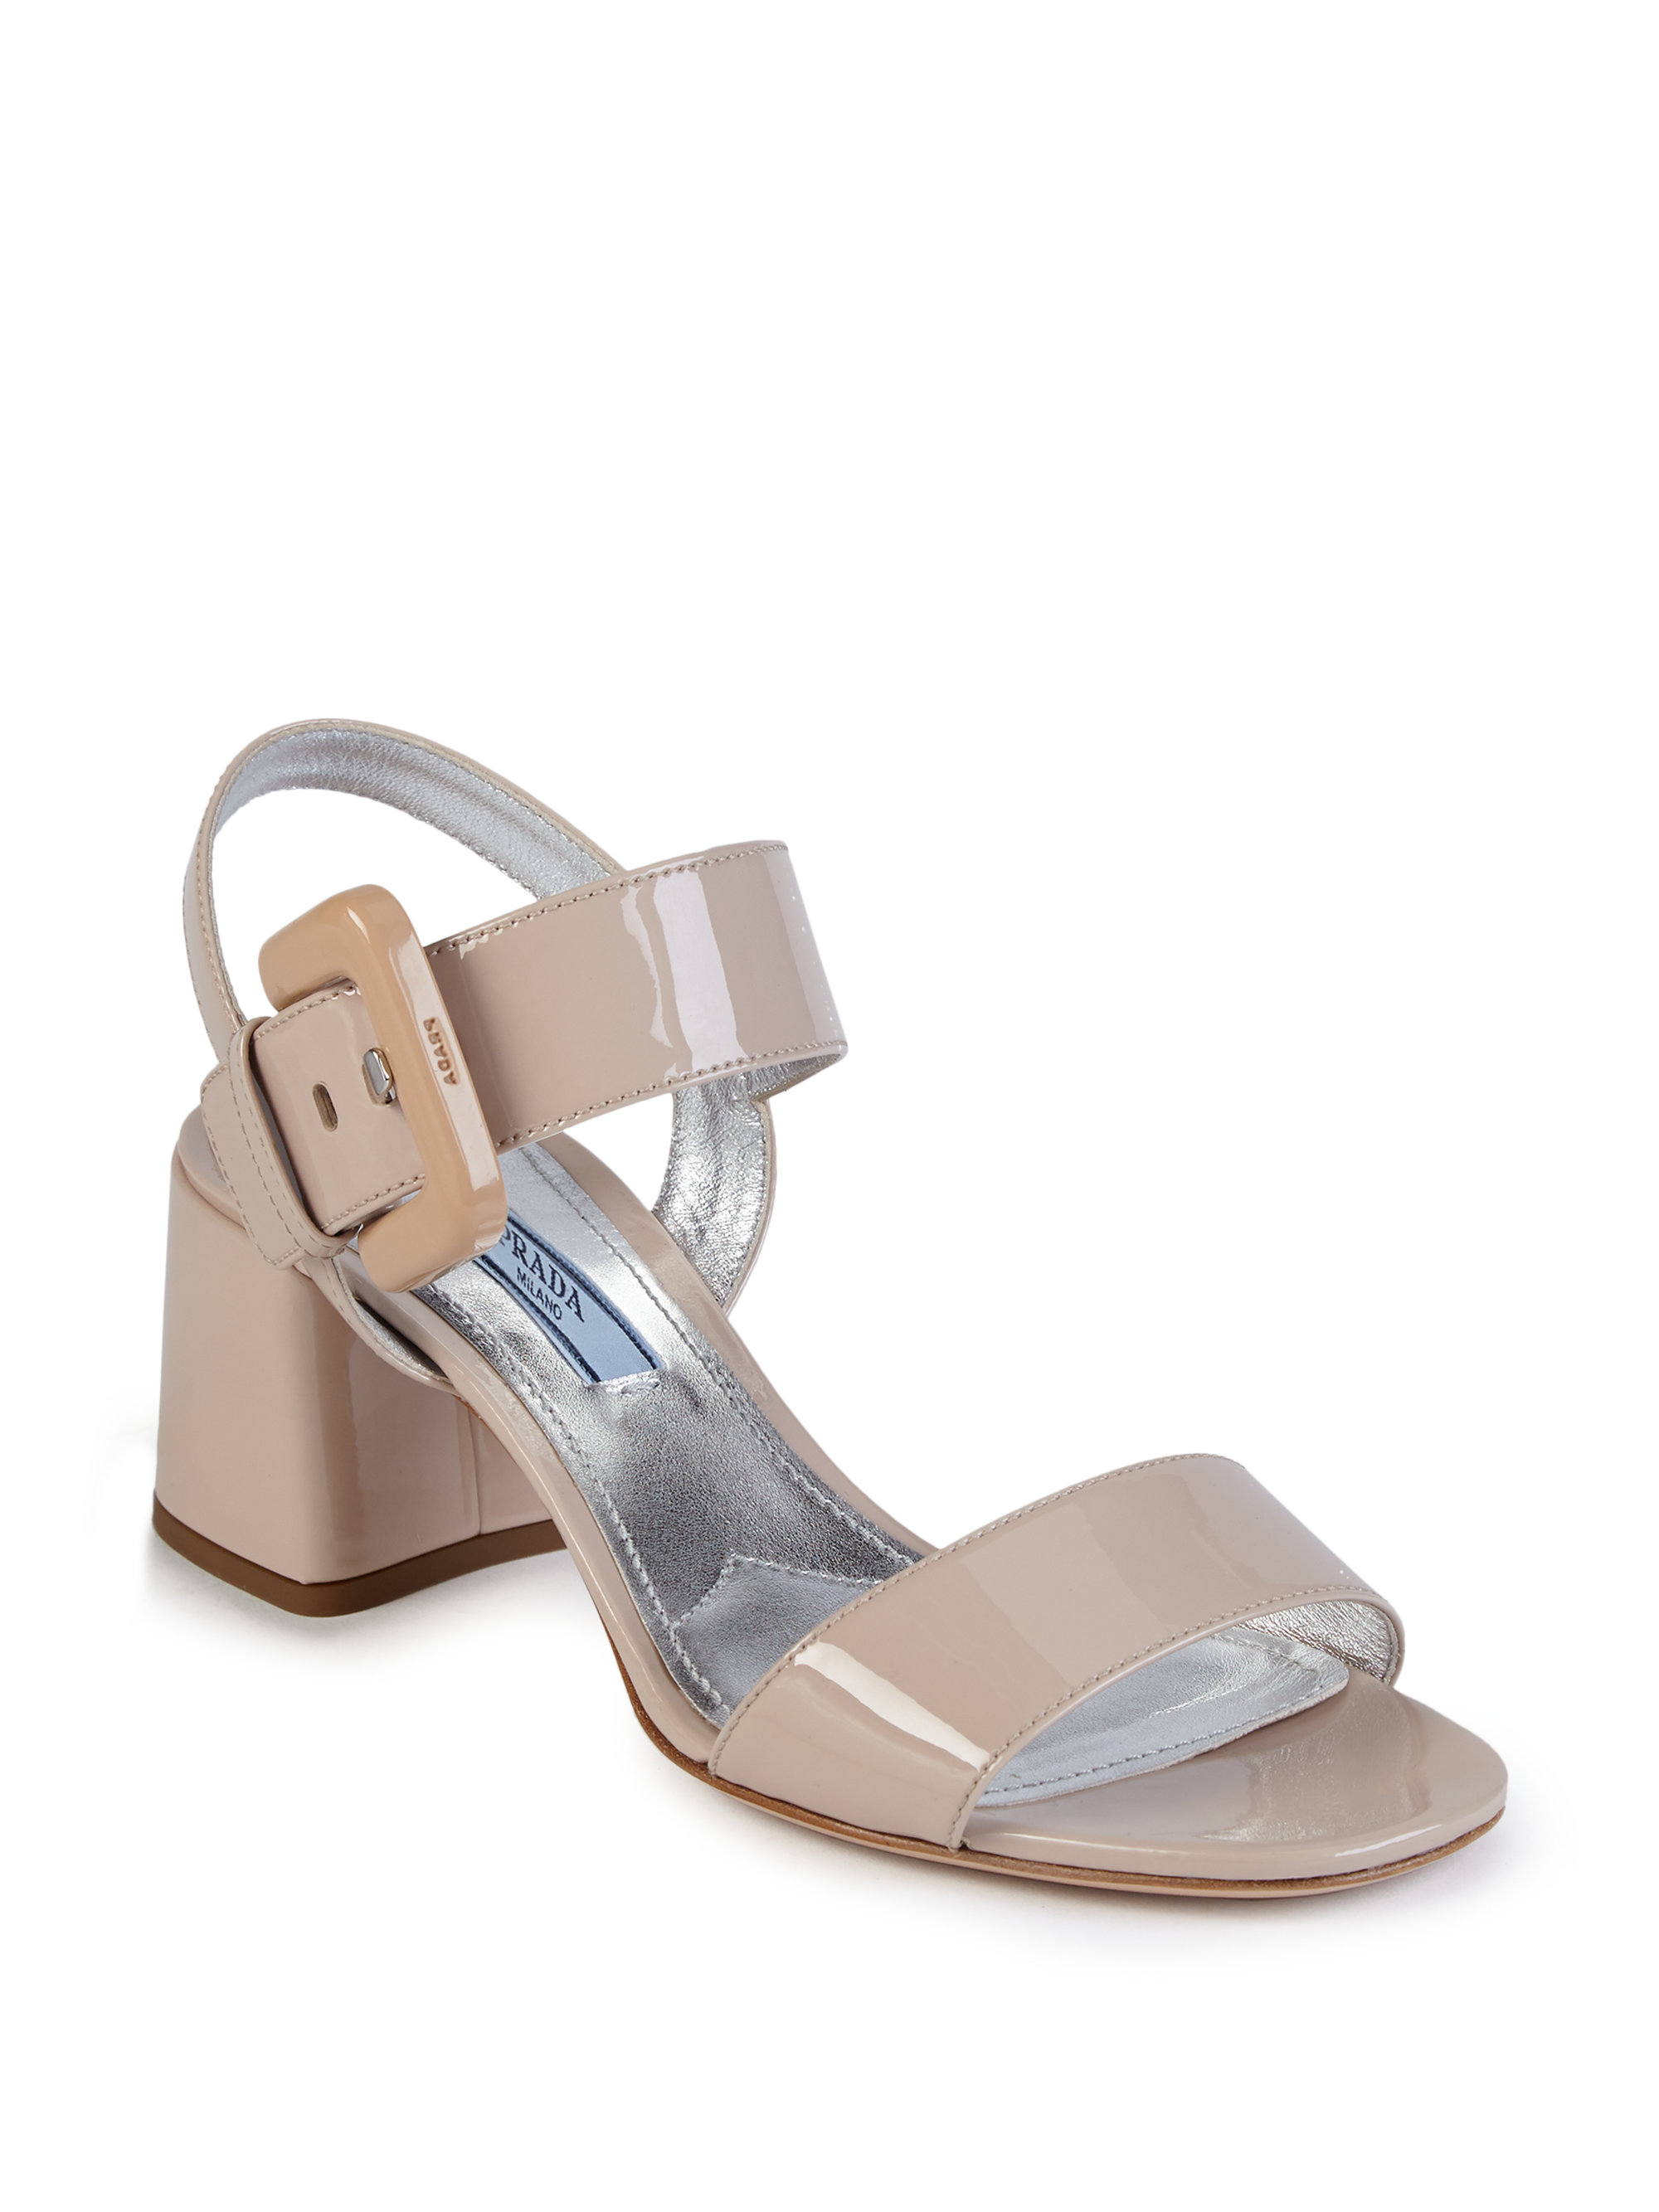 Prada Patent Leather Sandal UVeYChbf